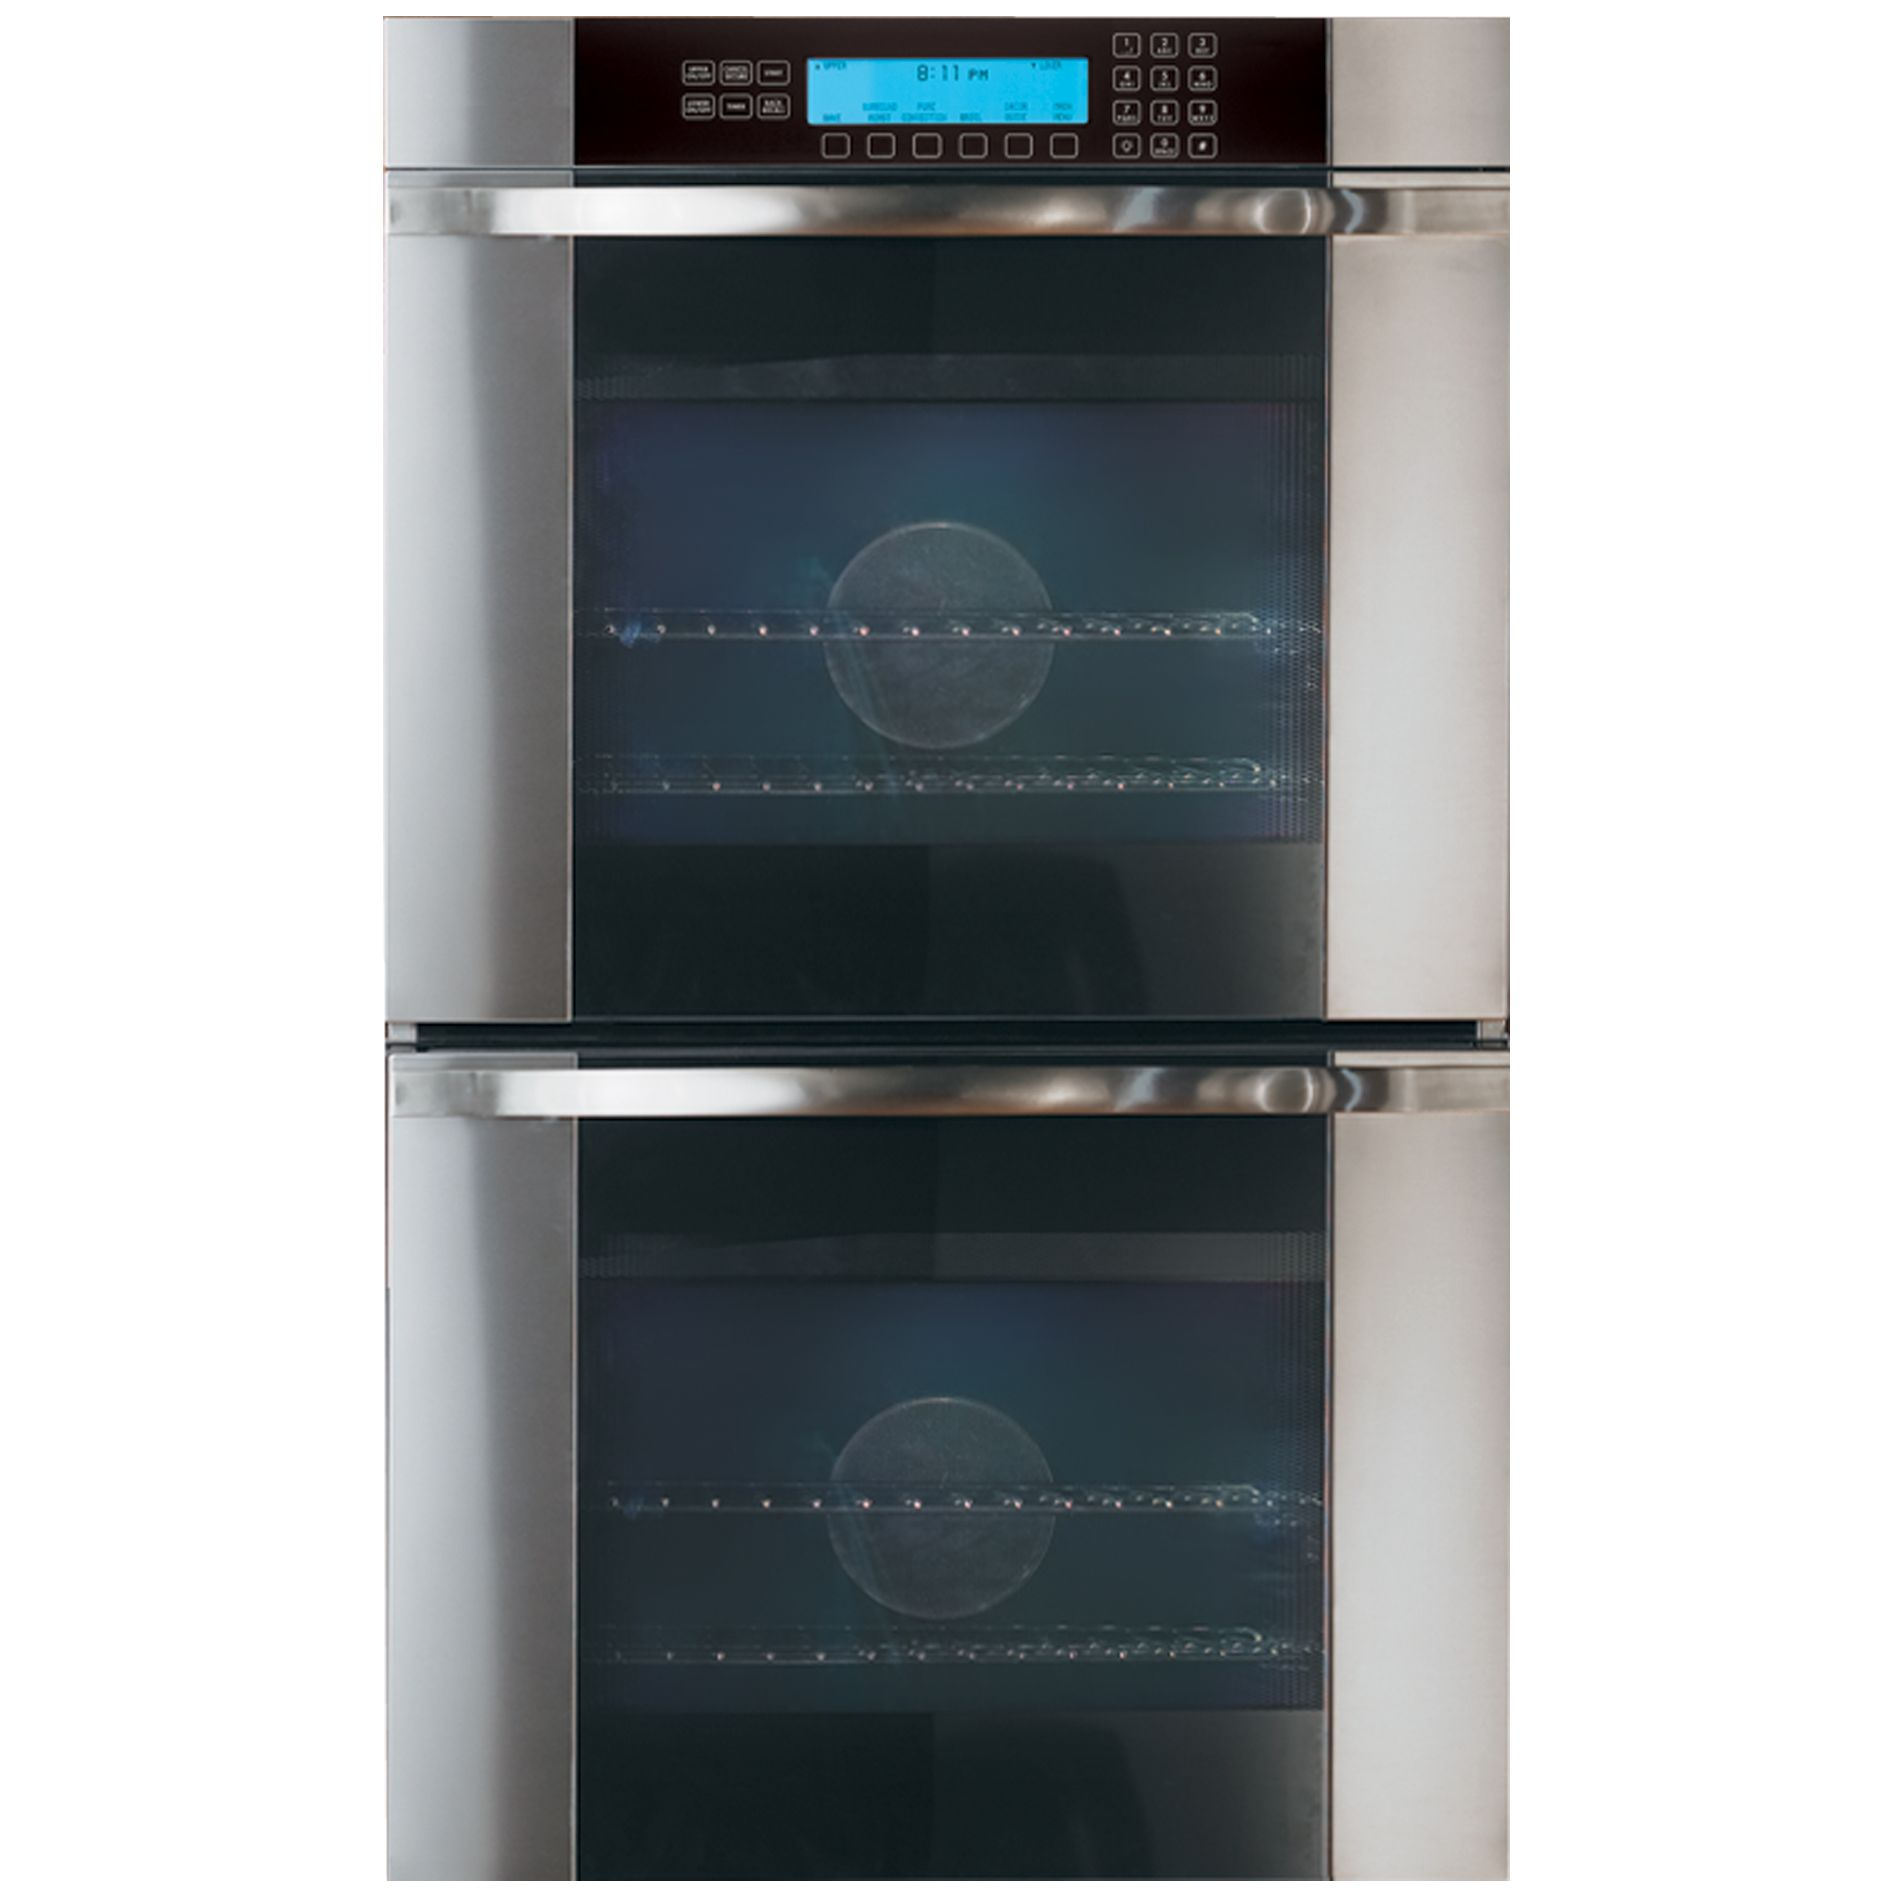 Dacor Double Wall Ovens Home Design Ideas Oven Wiring Diagram Electric